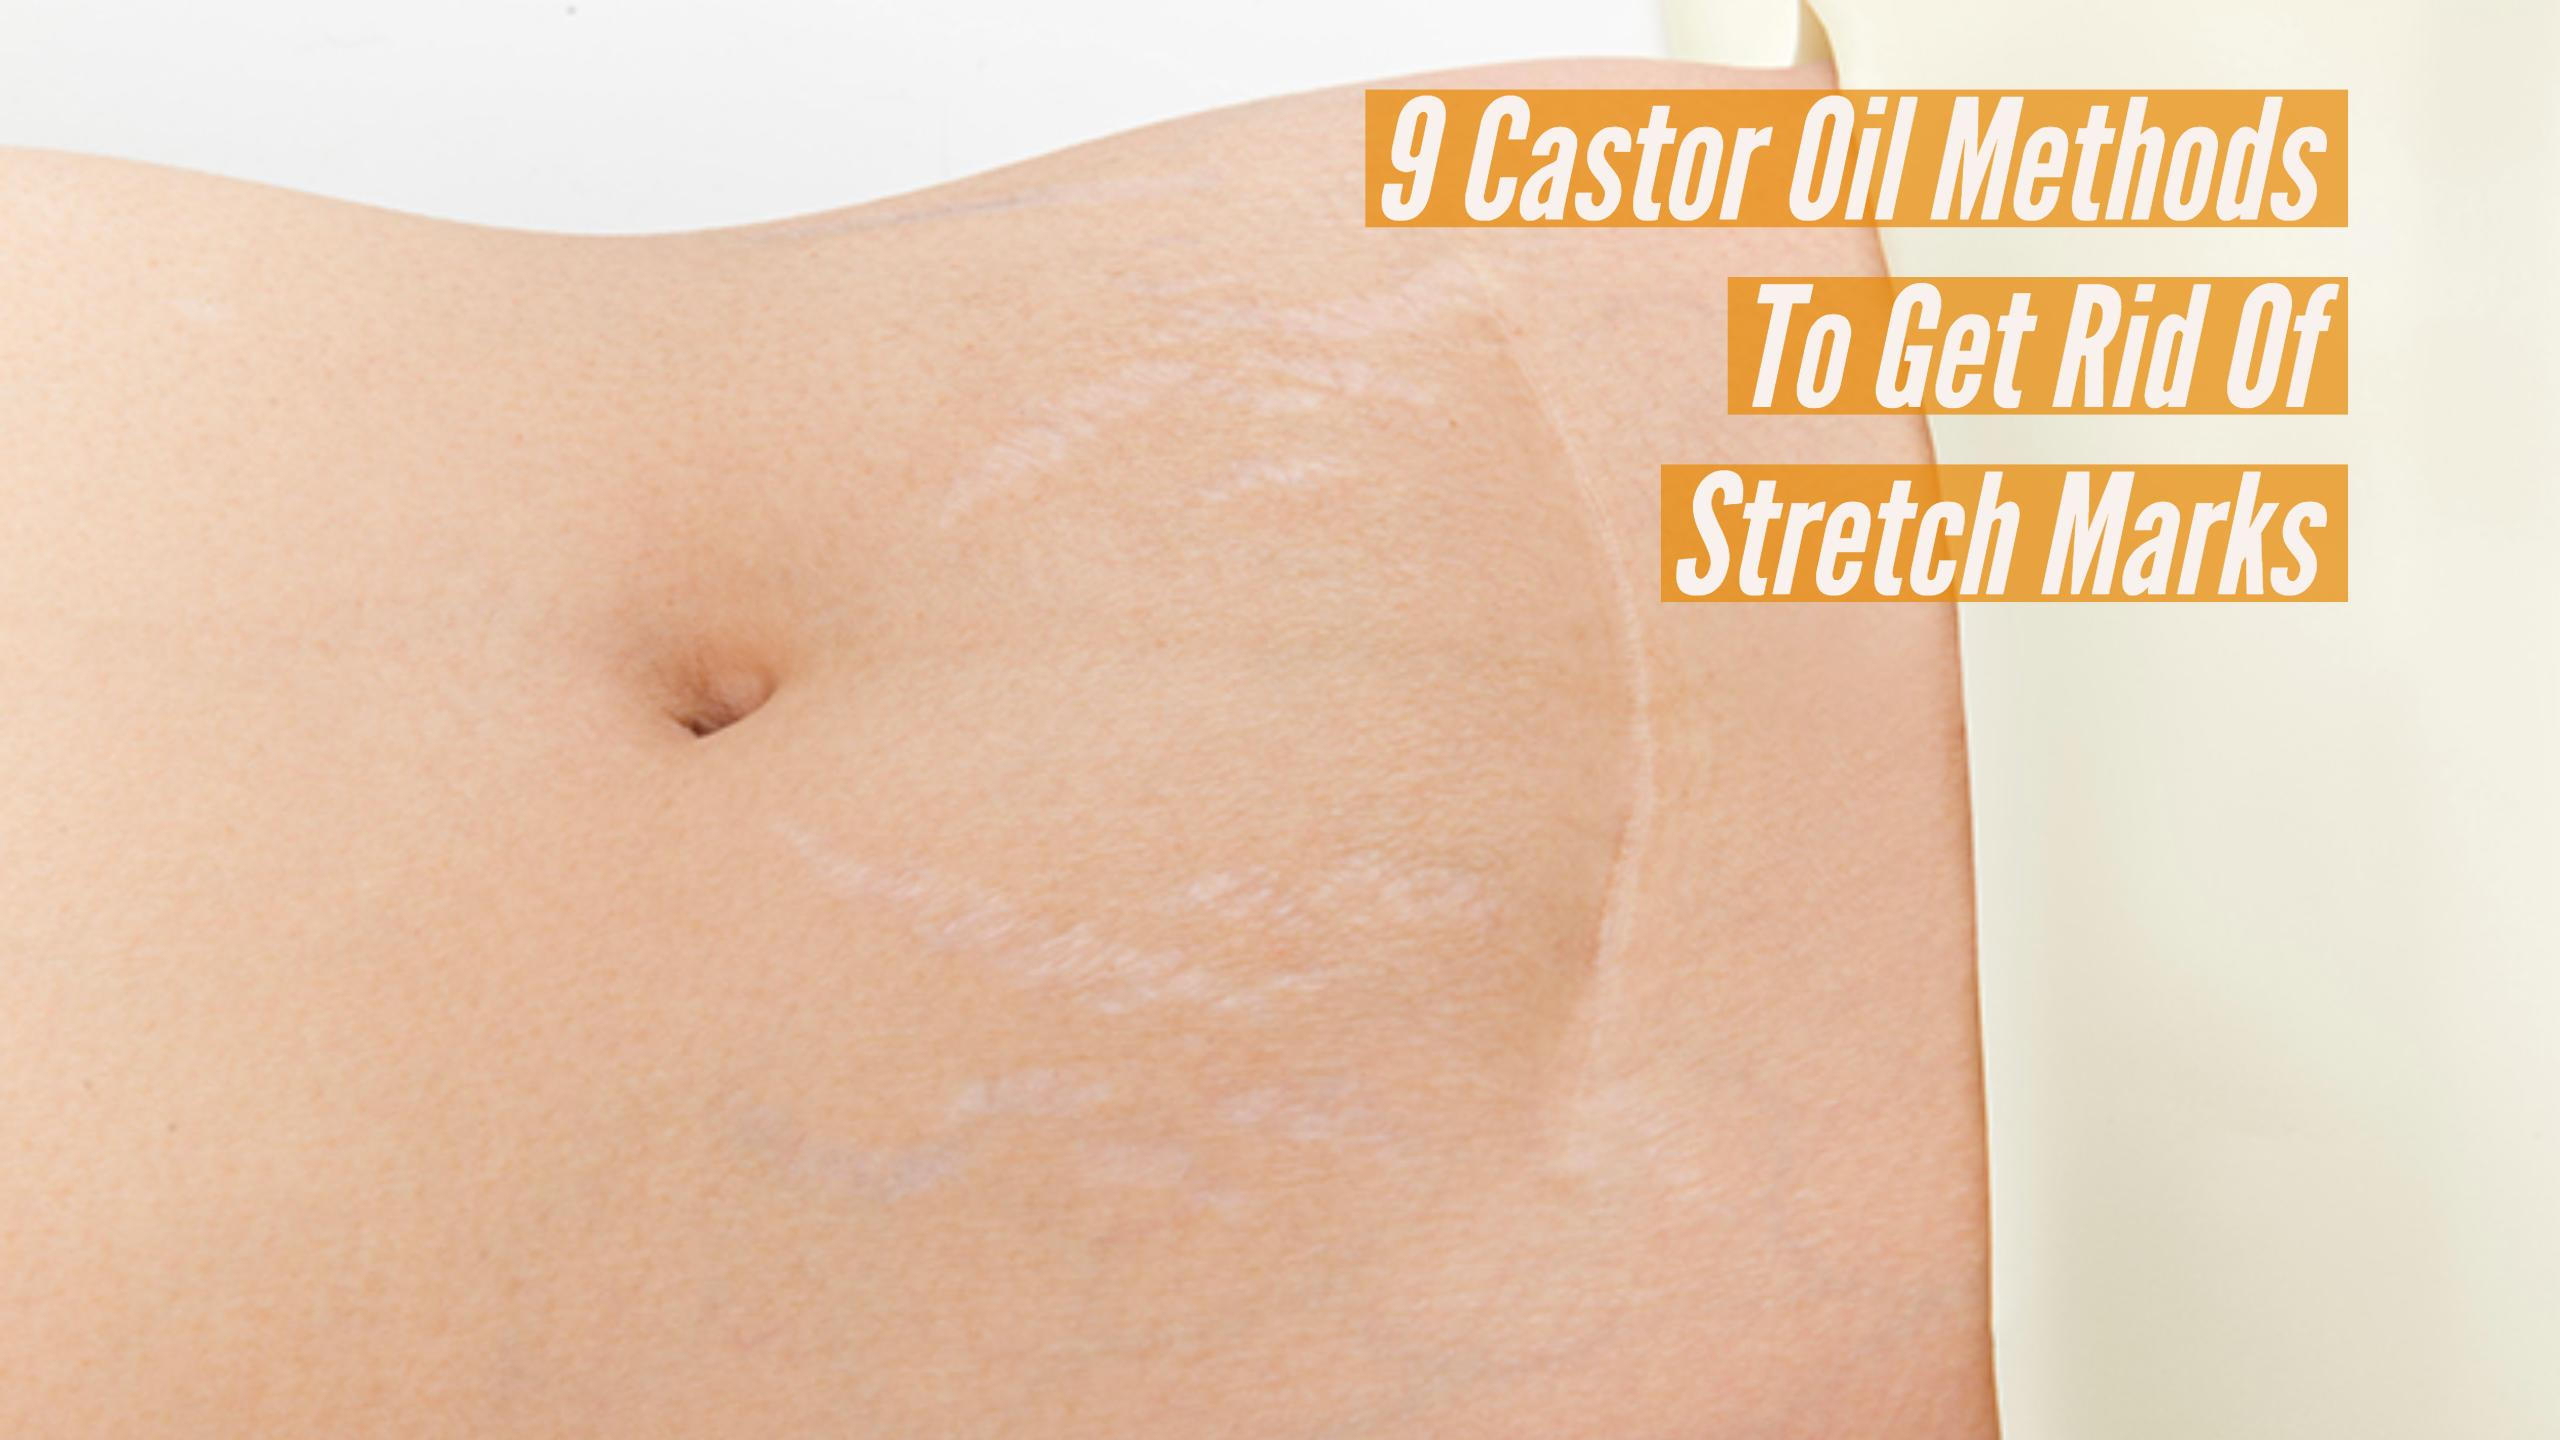 Castor Oil For Stretch Marks